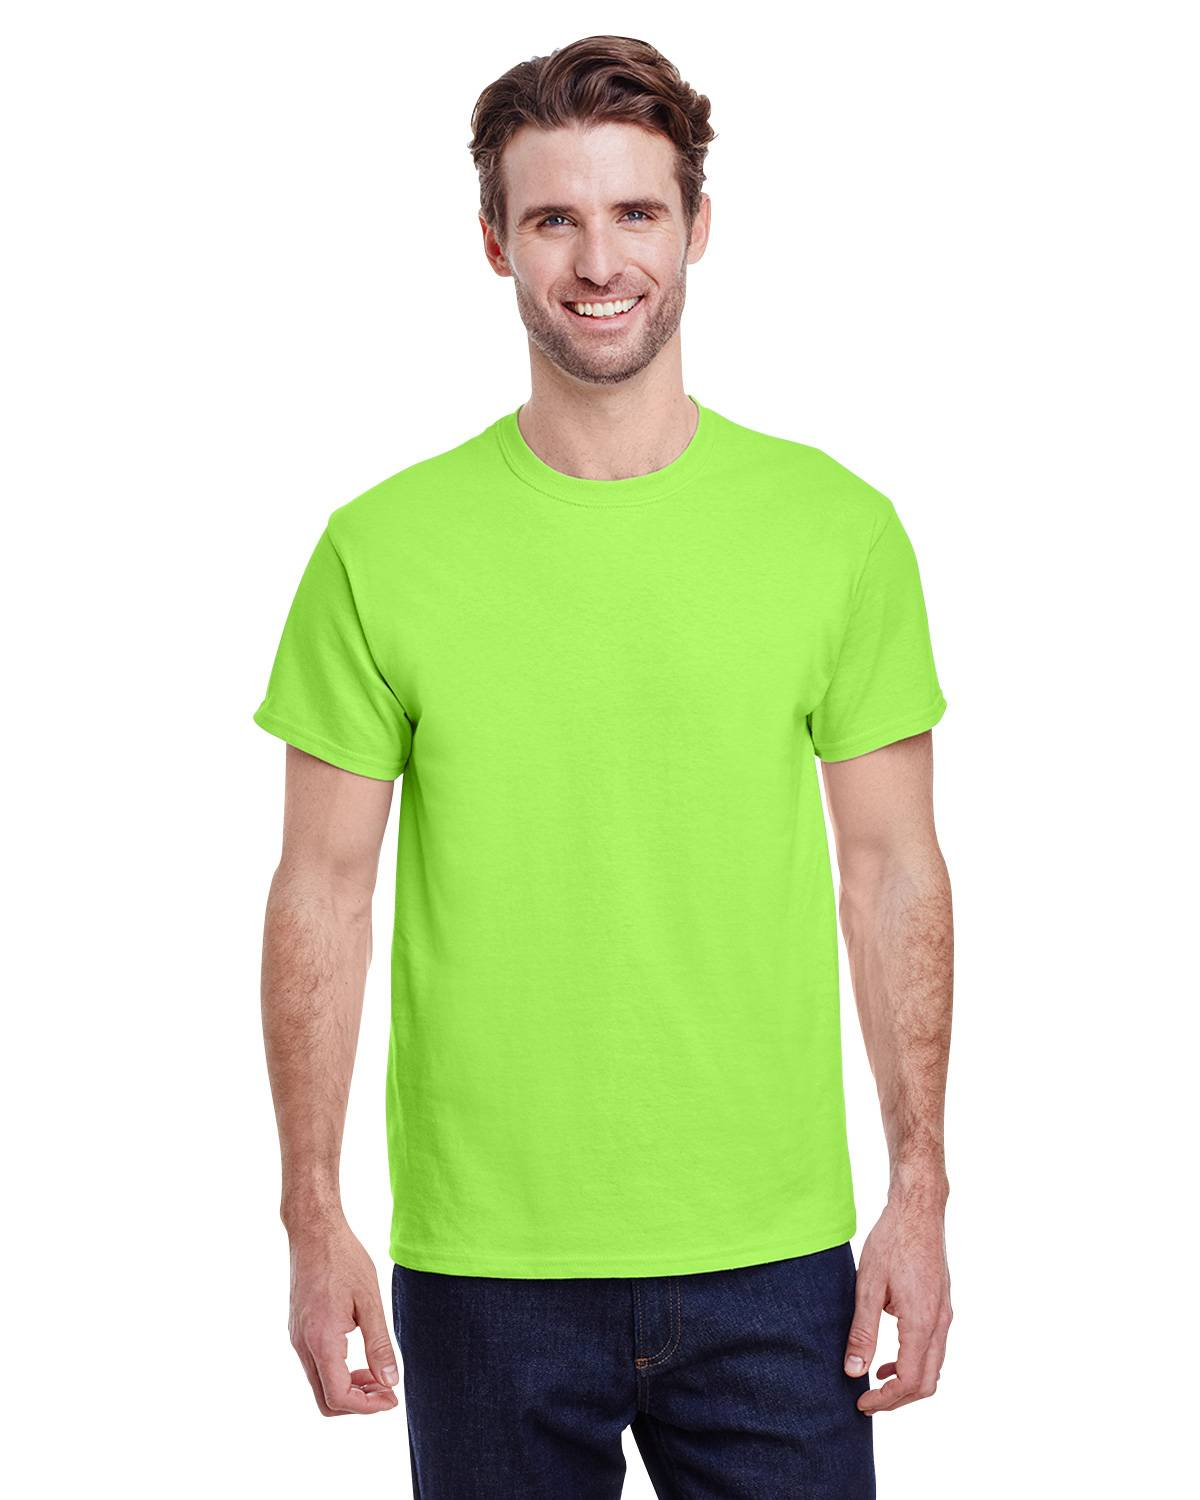 Gildan g500 heavy cotton t shirt for Gildan t shirts online